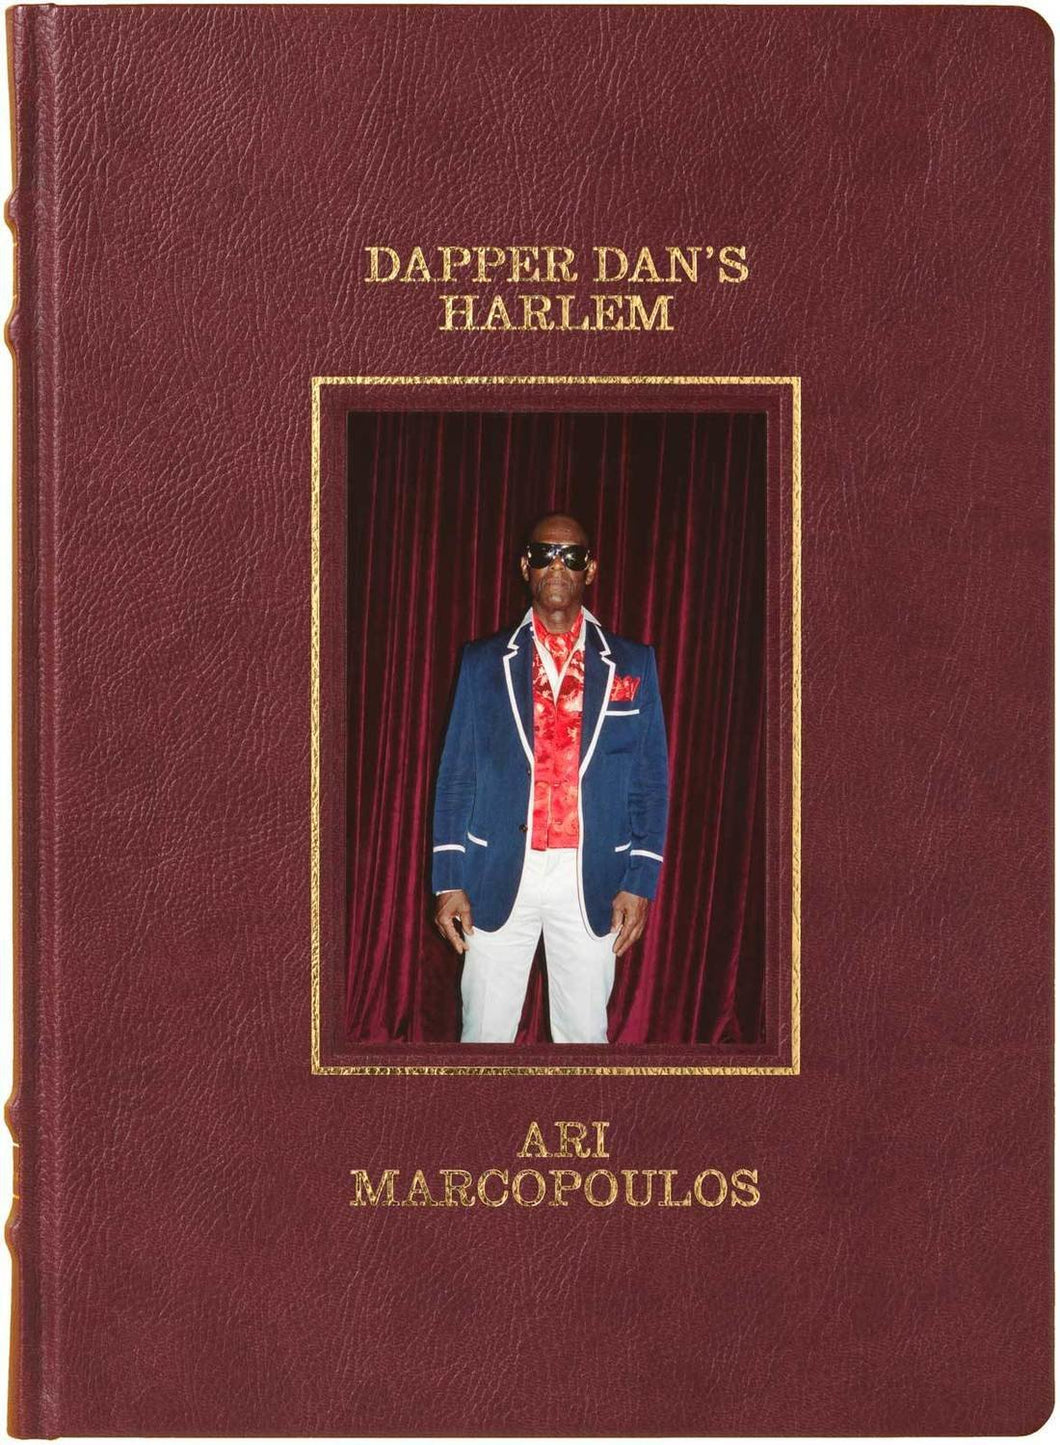 Gucci x Dapper Dan's Harlem by Ari Marcopoulos (First-Edition, Sealed)